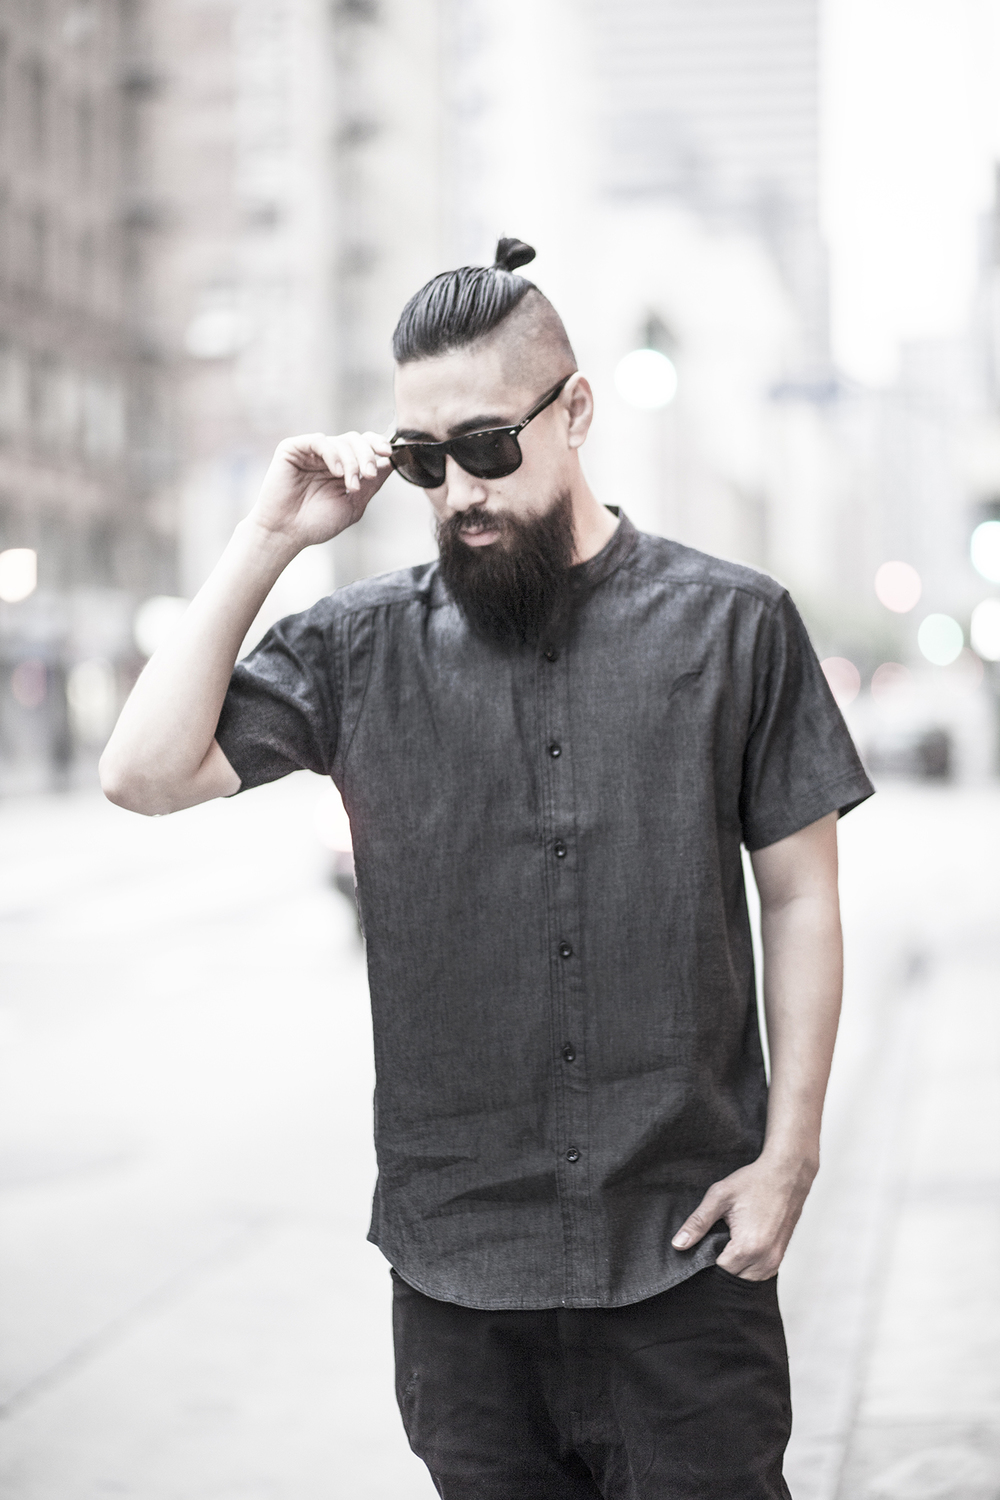 JUSTFENG RYANFENG QUESTCREW PHOTOGRAPHY PHOTOGRAPHER PUBLISHBRAND men style